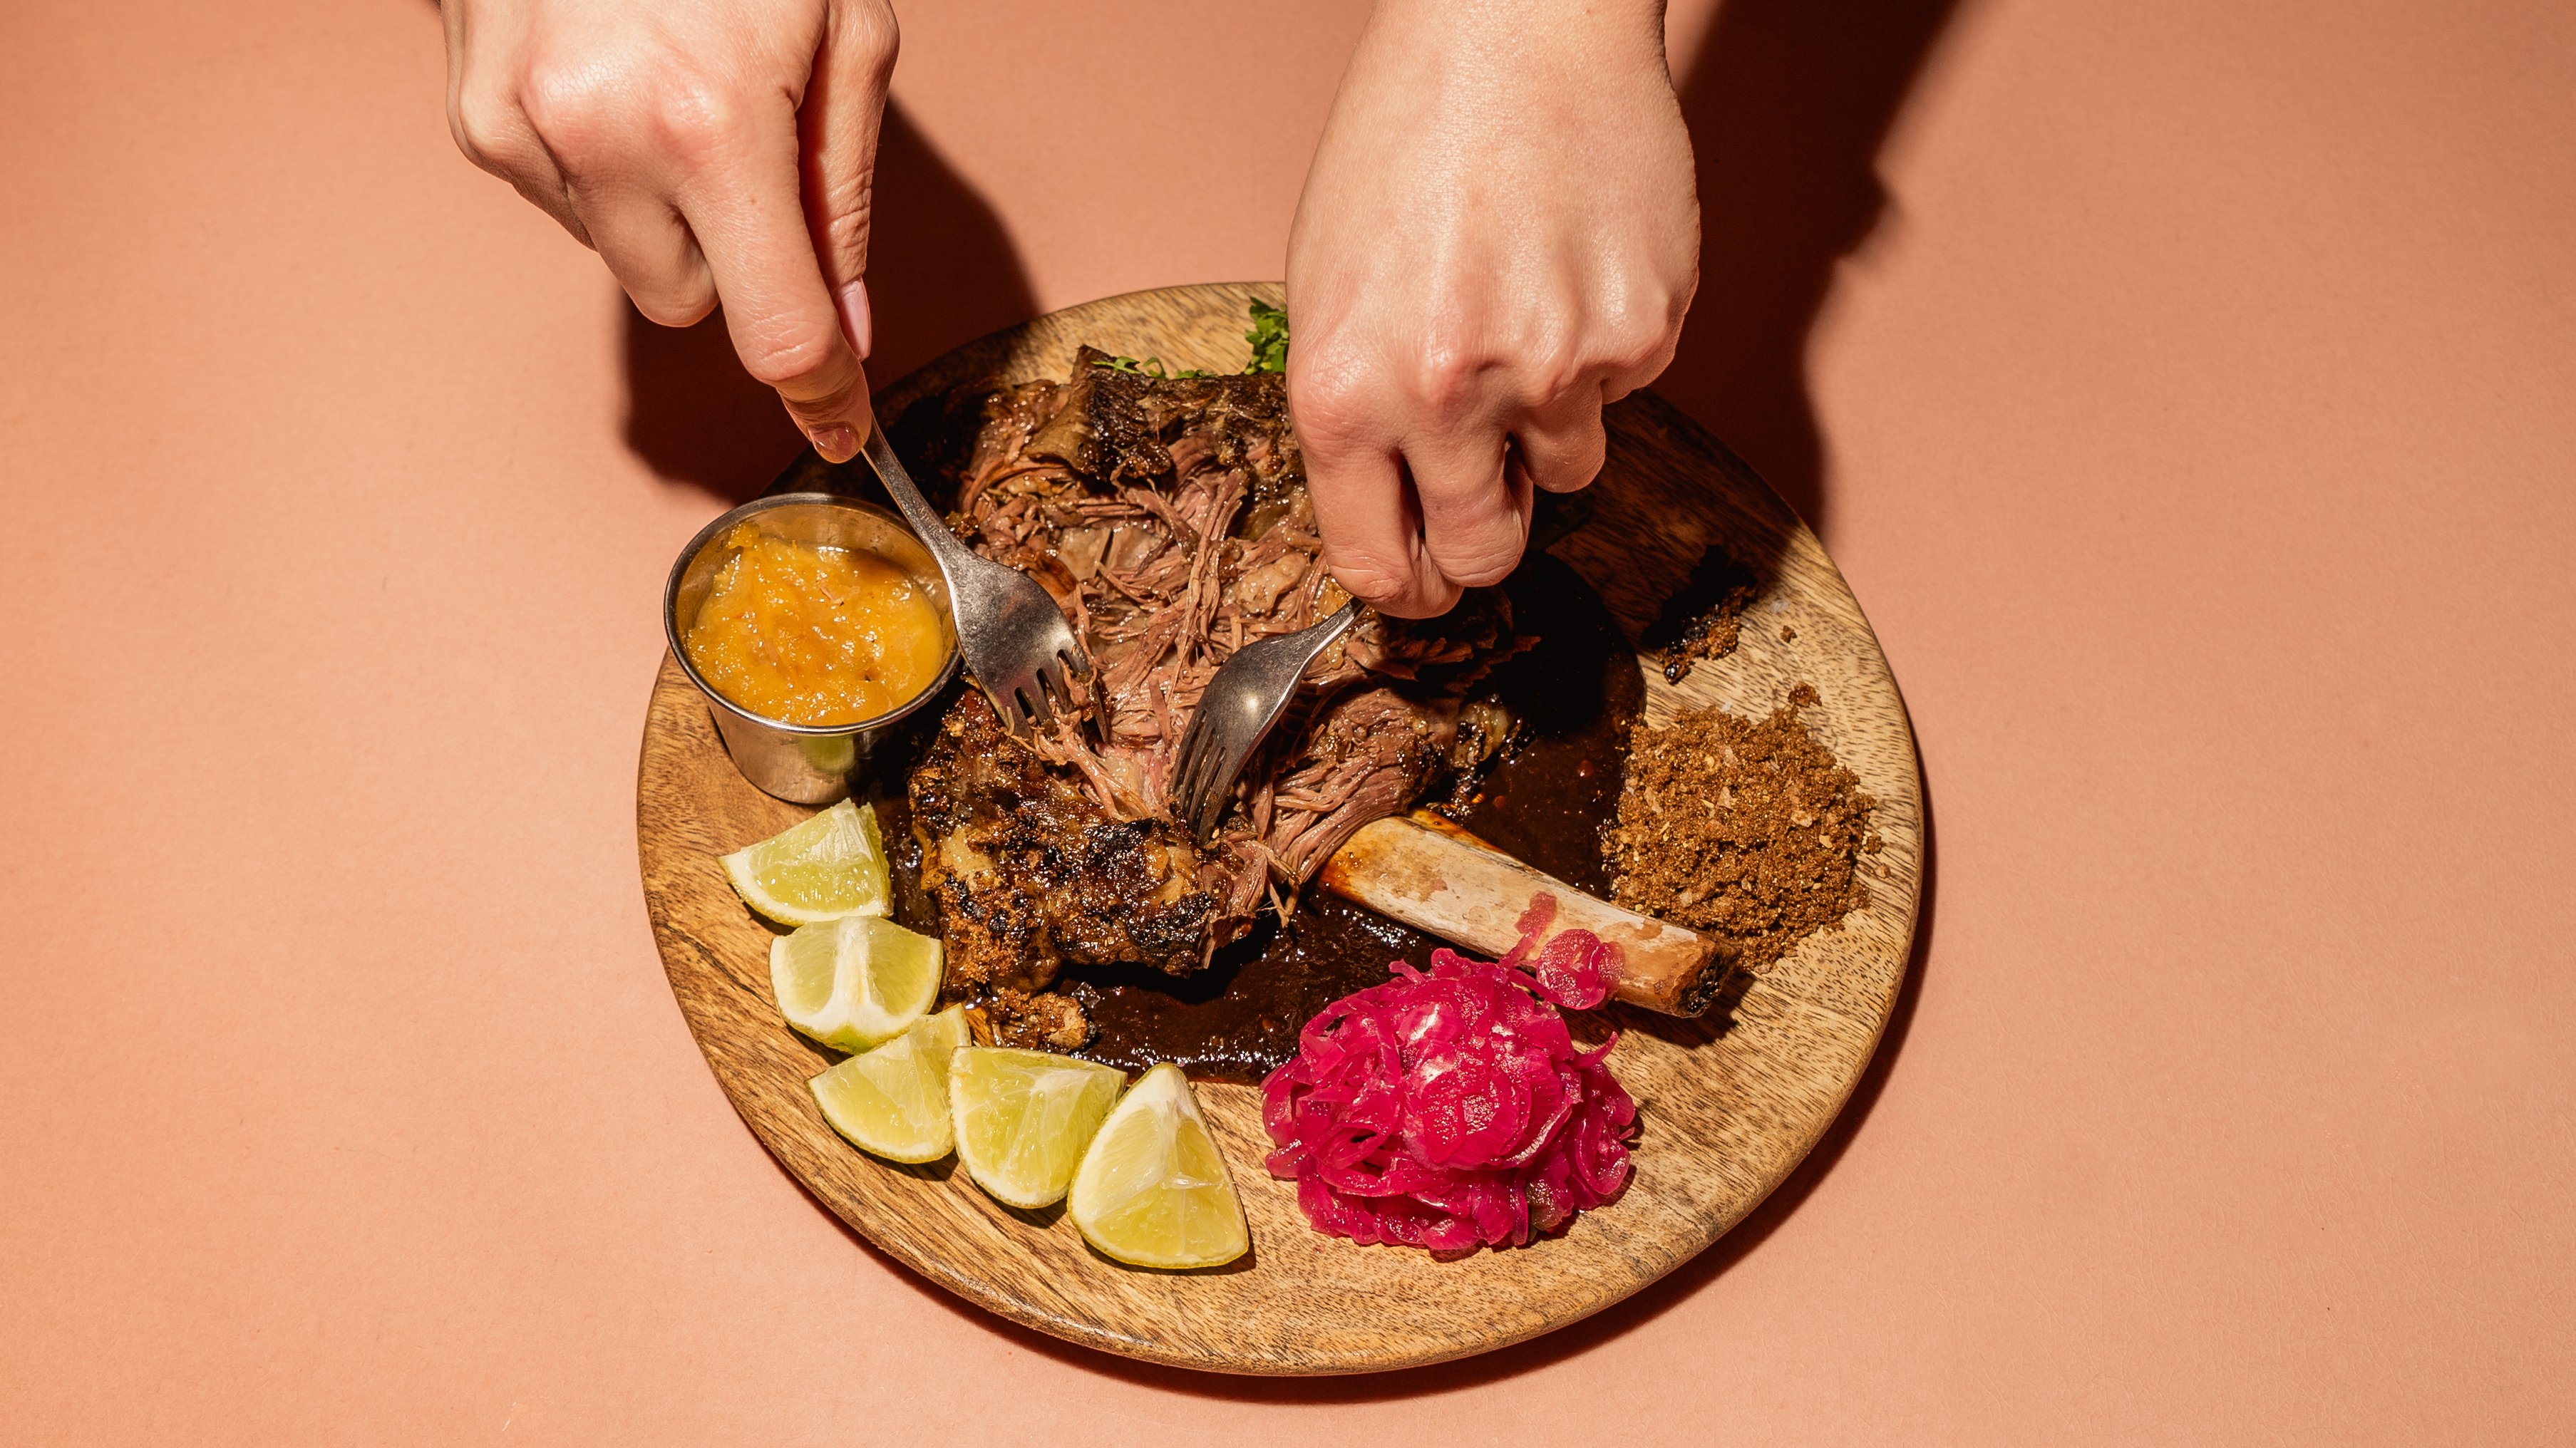 Coal Drops Yard restaurant development at King's Cross London is now open, featuring these tacos from El Pastor